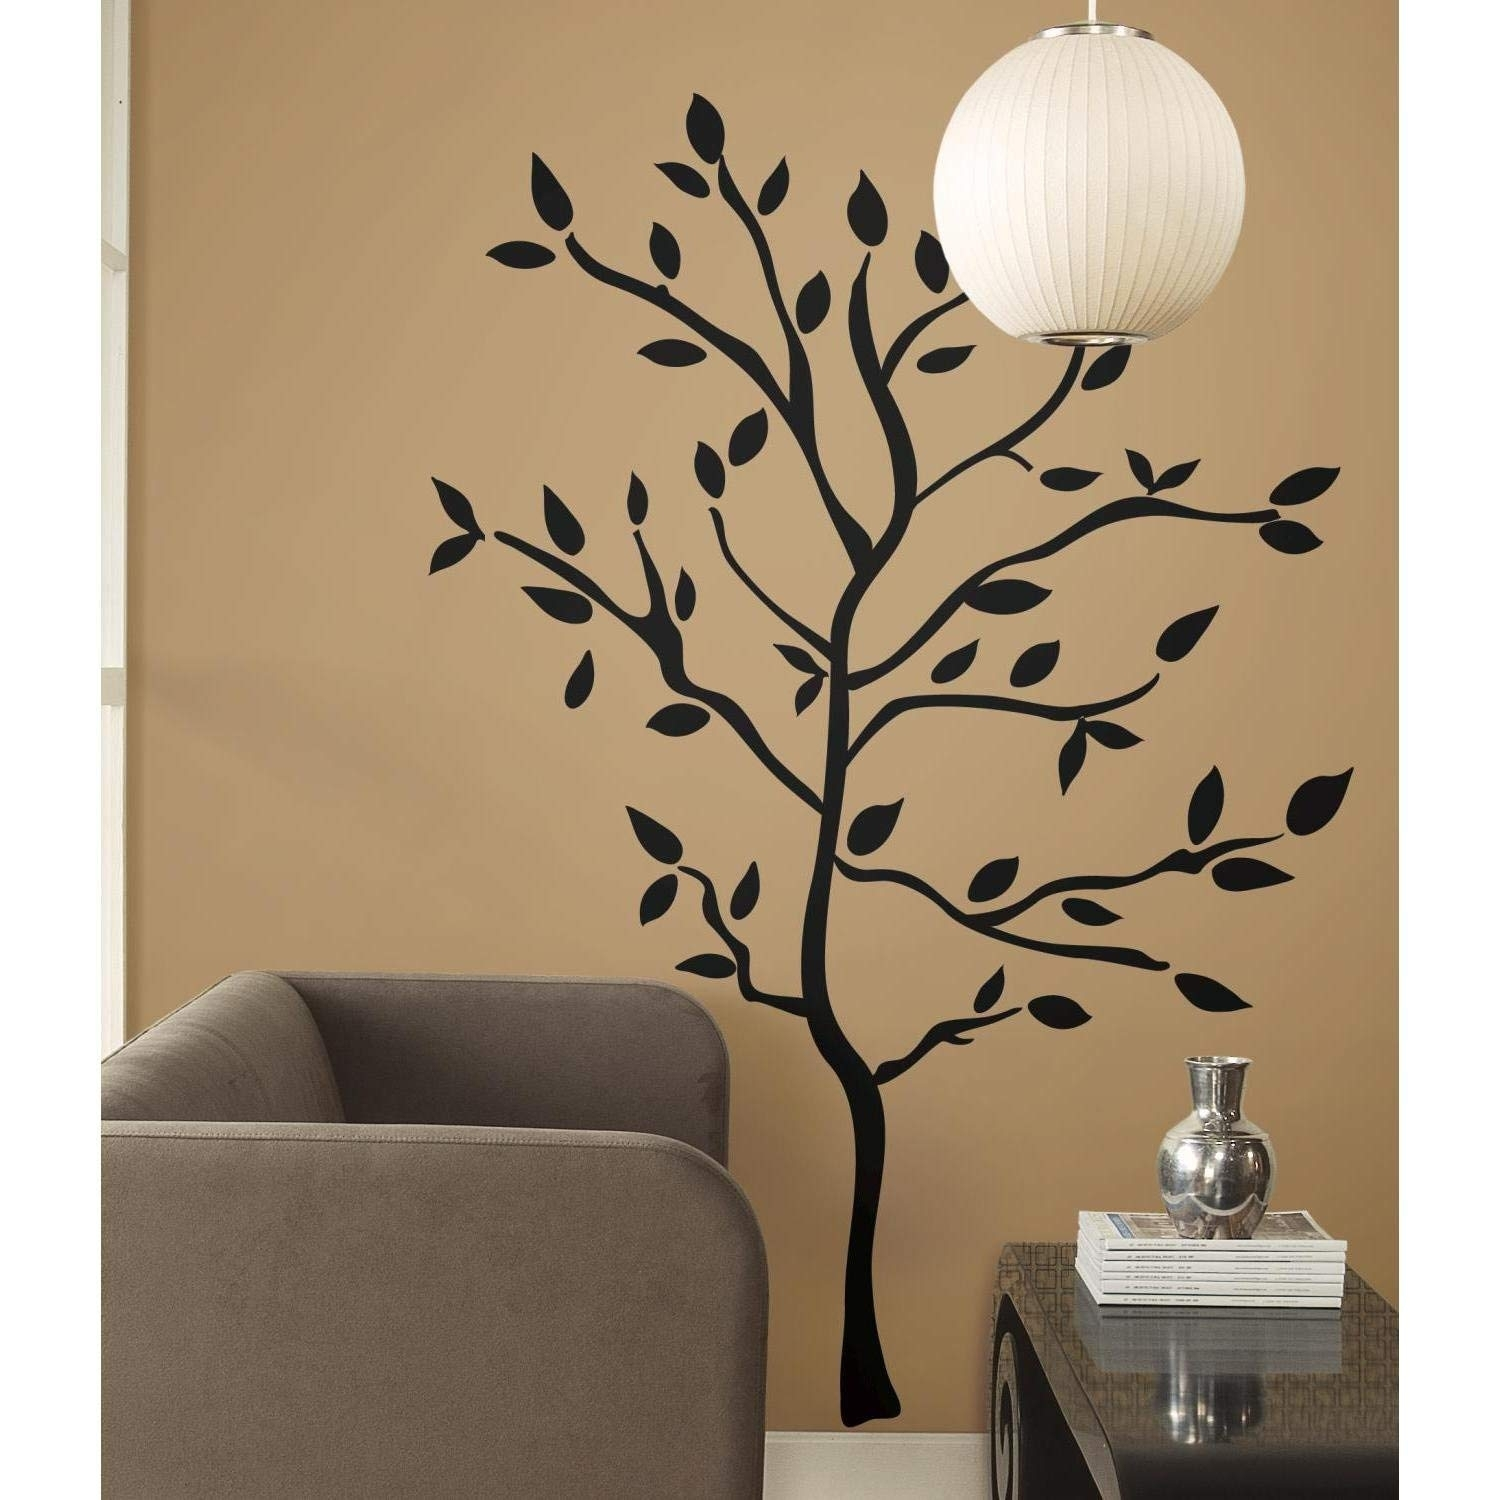 Roommates Rmk1317Gm Tree Branches Peel & Stick Wall Decals – Wall With Regard To Stick On Wall Art (View 12 of 20)